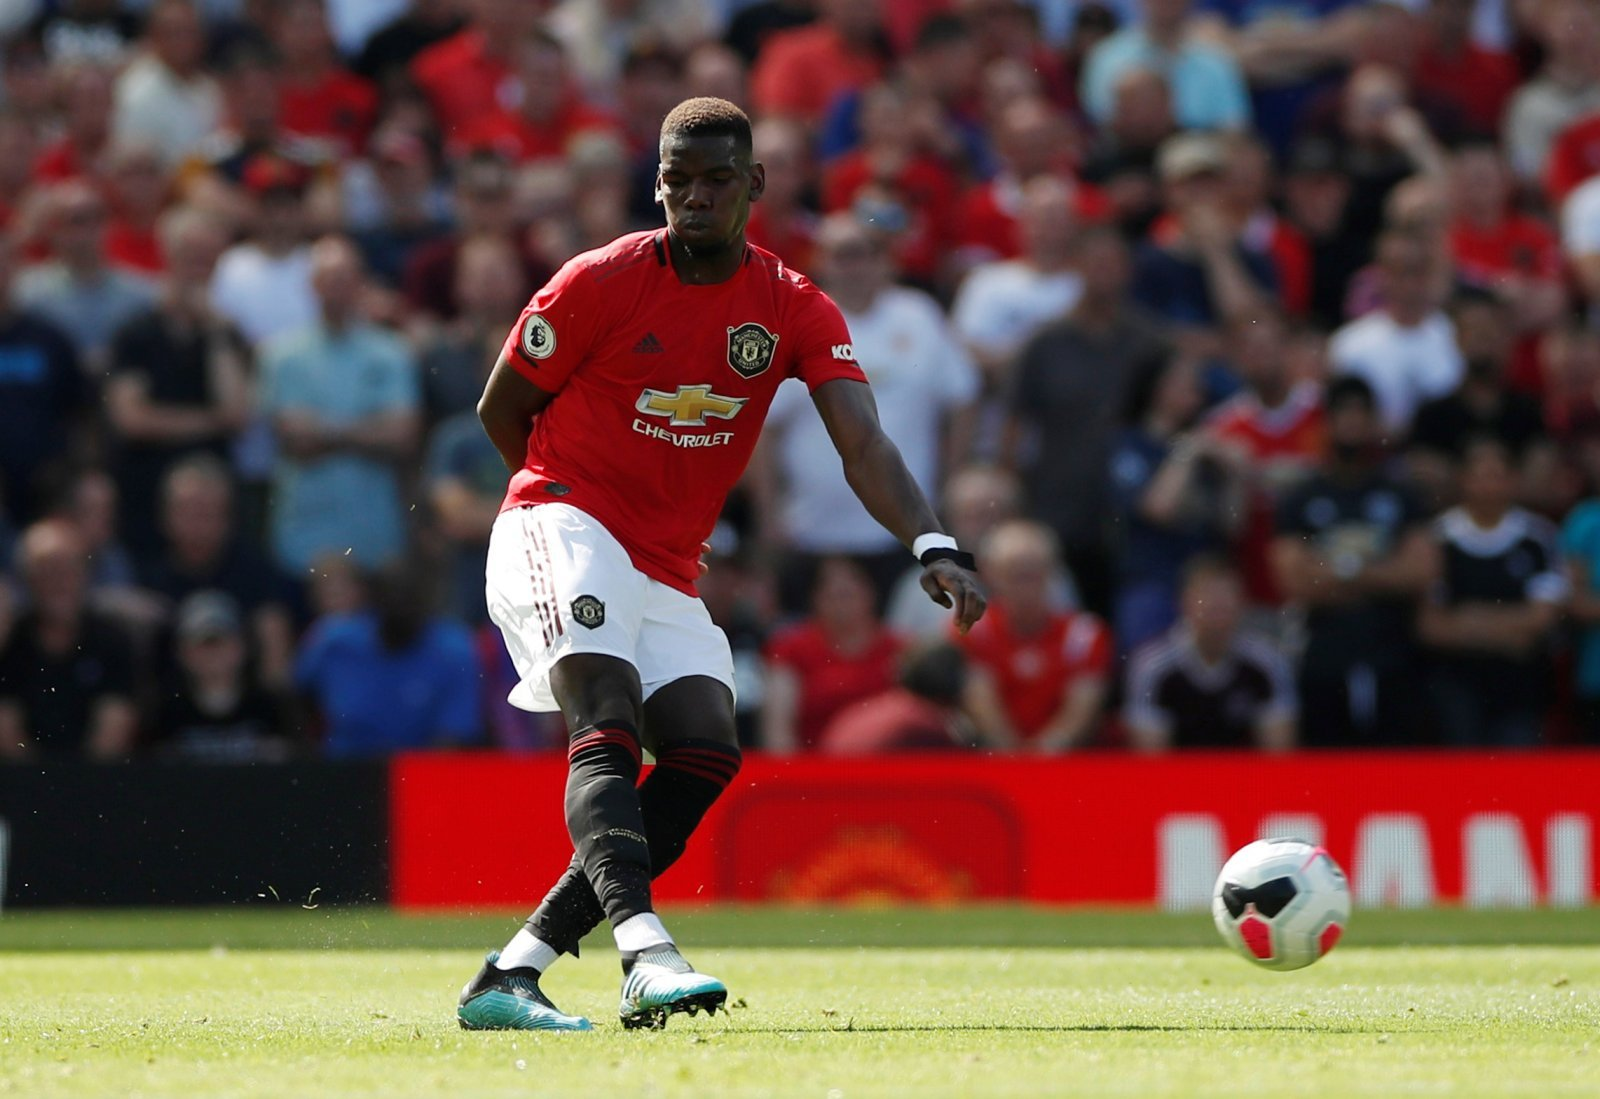 Manchester United: Some fans think Paul Pogba's exaggerating injury to avoid playing for Solskjaer